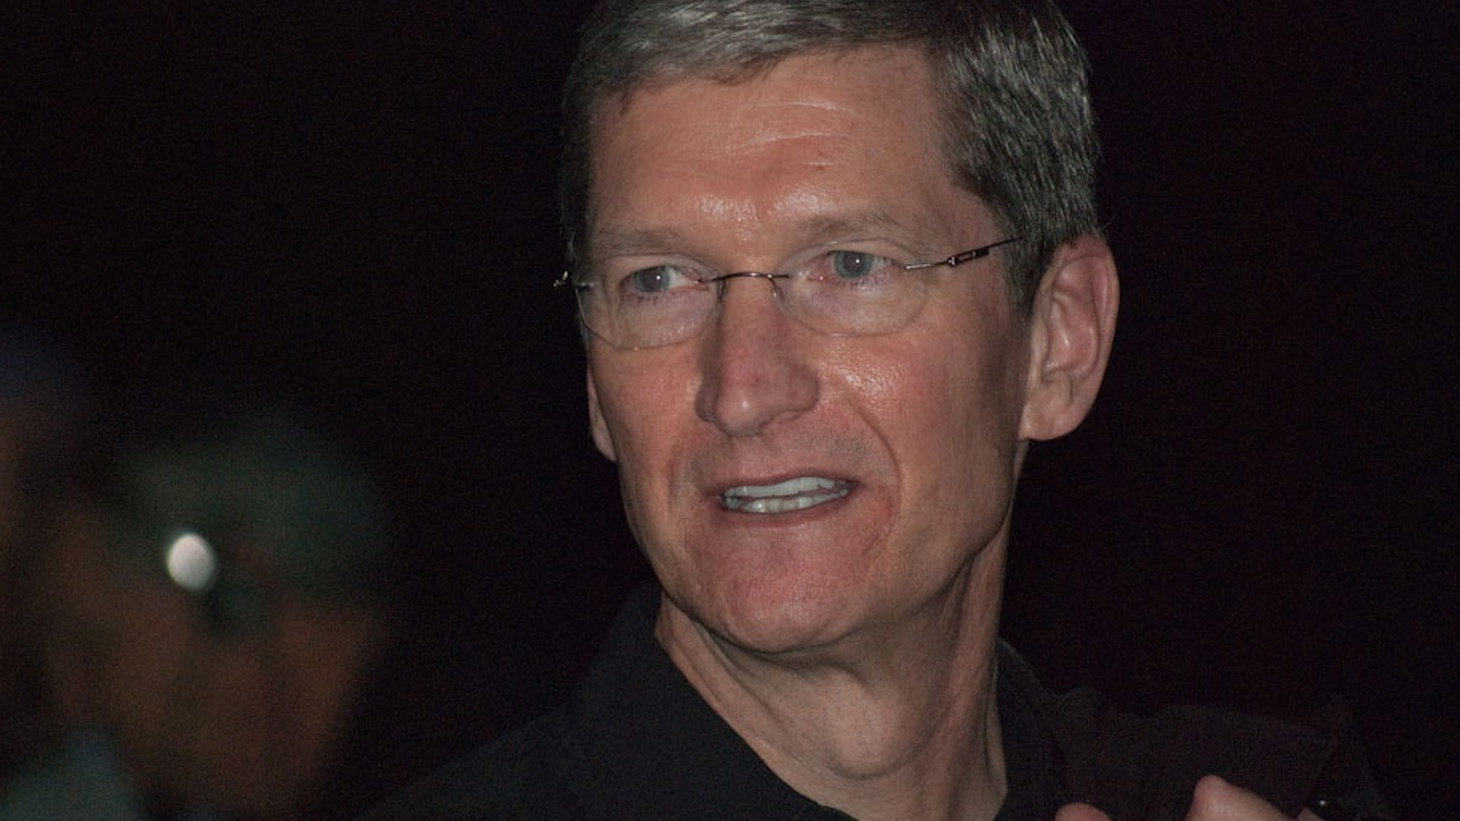 Apple CEO Tim Cook announces he's gay, why the 'war on women' isn't playing in the midterm elections, and why fast-food workers in Denmark make so much money.